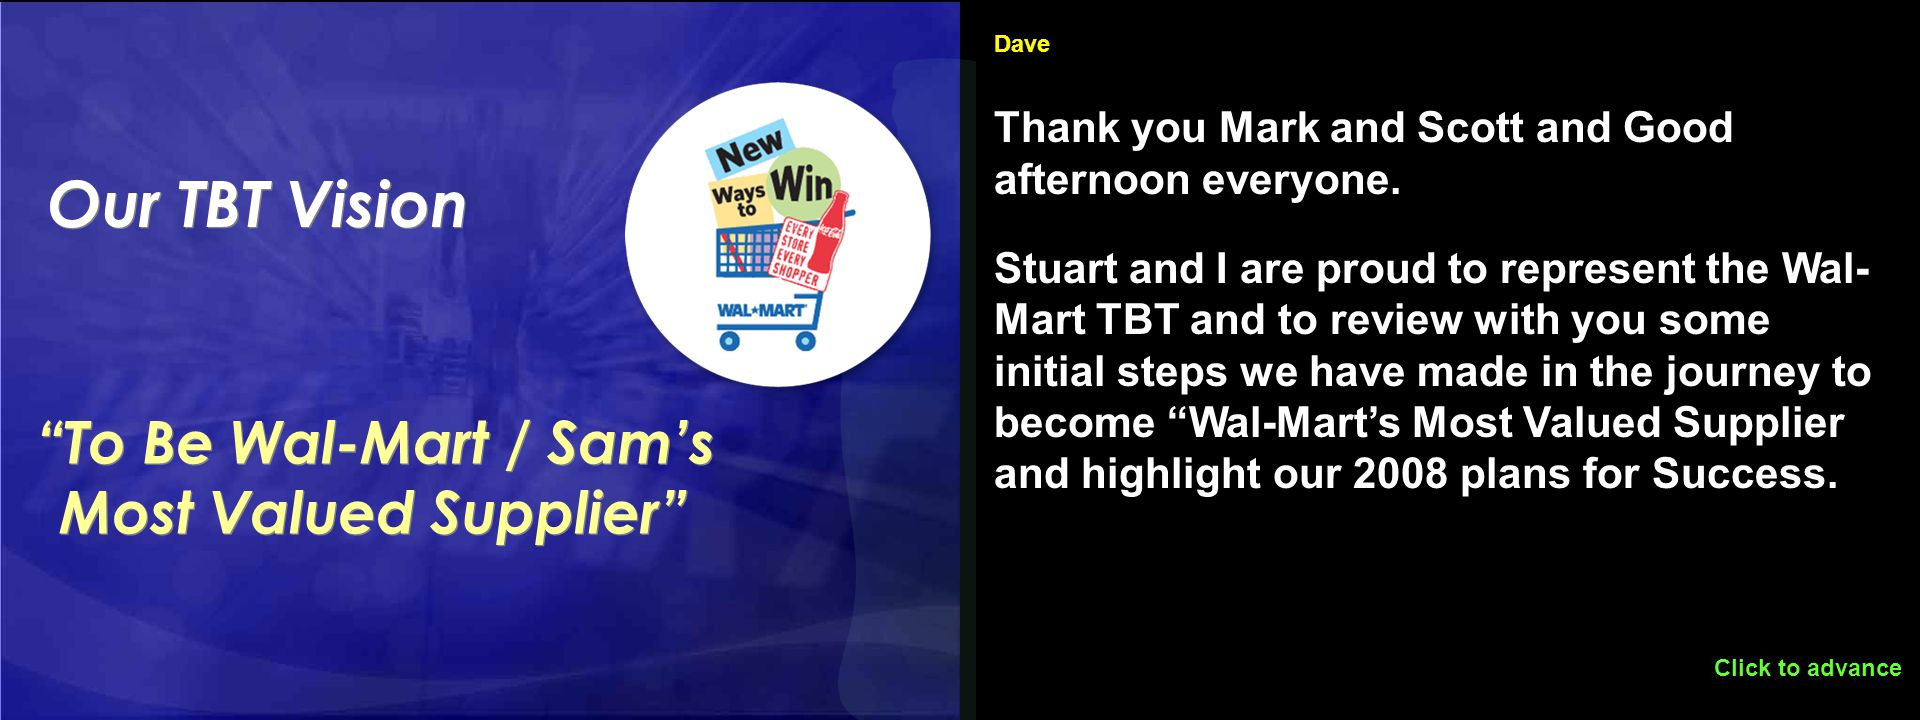 1 Our TBT Vision To Be Wal-Mart / Sam's Most Valued Supplier Click to advance Dave Thank you Mark and Scott and Good afternoon everyone.